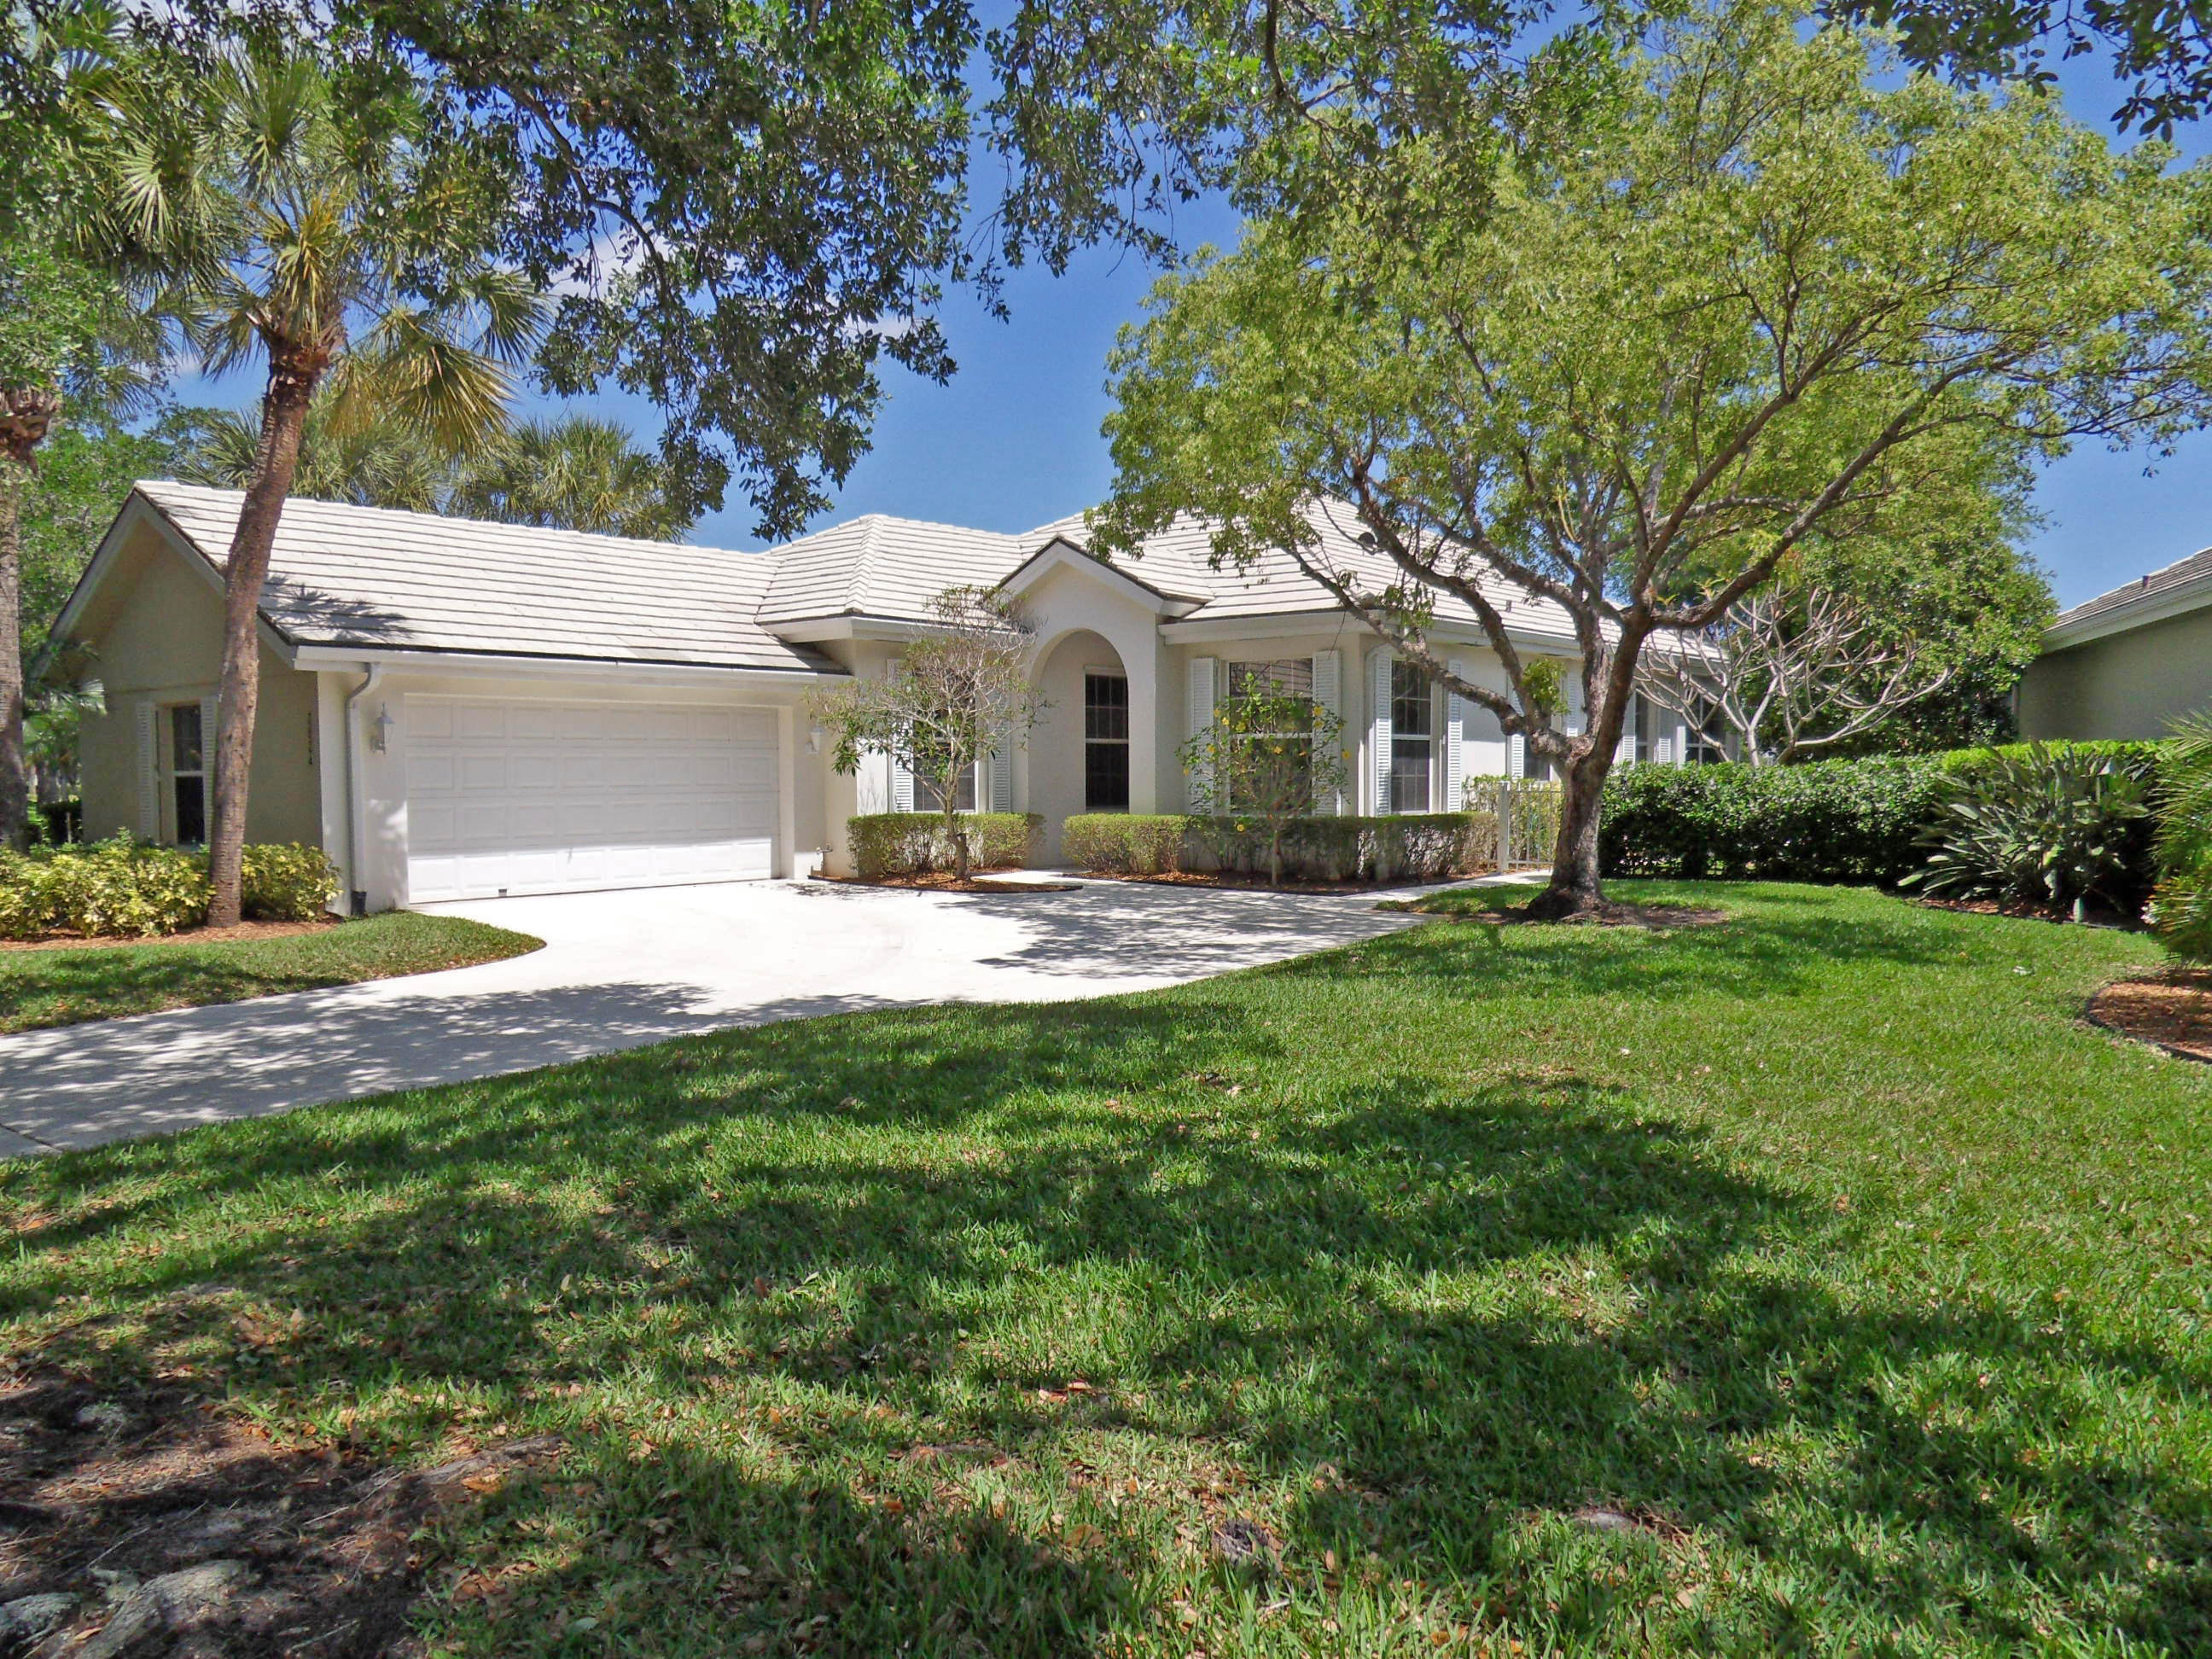 Homes For Sale In The Meadows In Palm City Florida